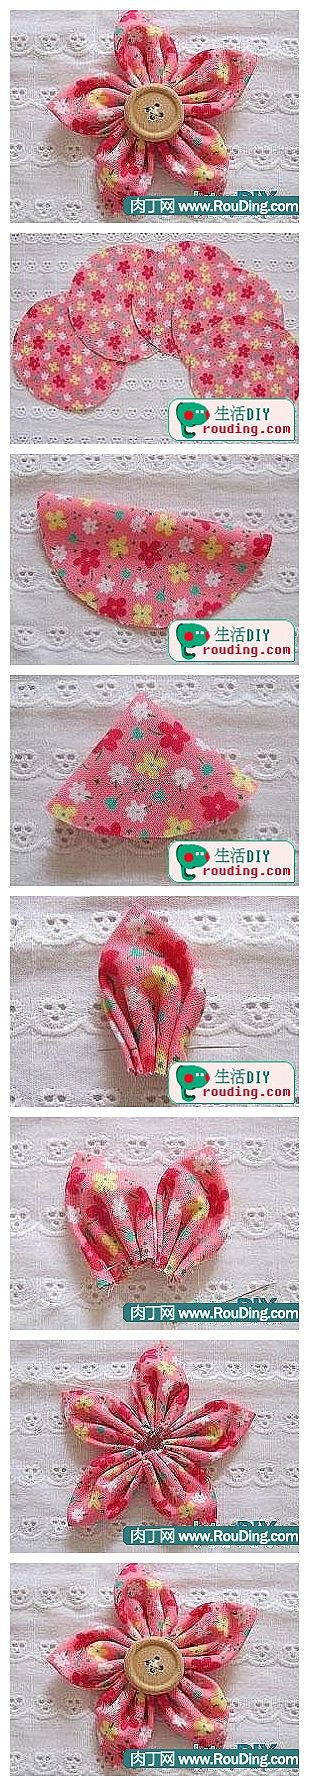 fabric flower tutorial. A great beginner hand sewing project.